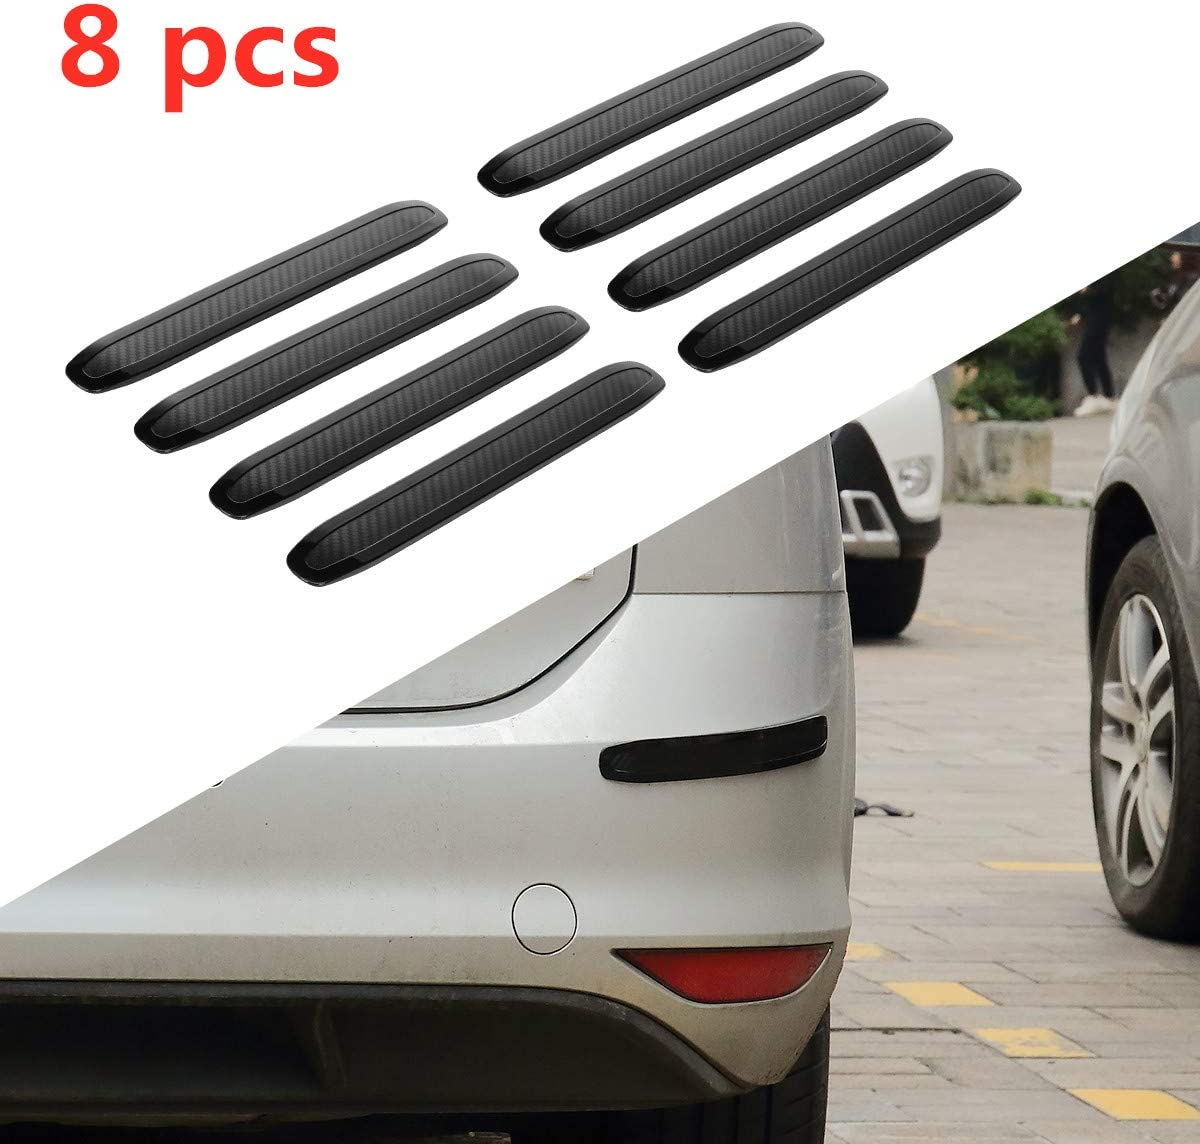 ZaCoo 2 Pack Car Bumper Guard Auto Body Bumper Guard Anti-Scratch Protector Thicken Soft Rubber Strip for Front//Rear Bumper 15.8 x 2 Black